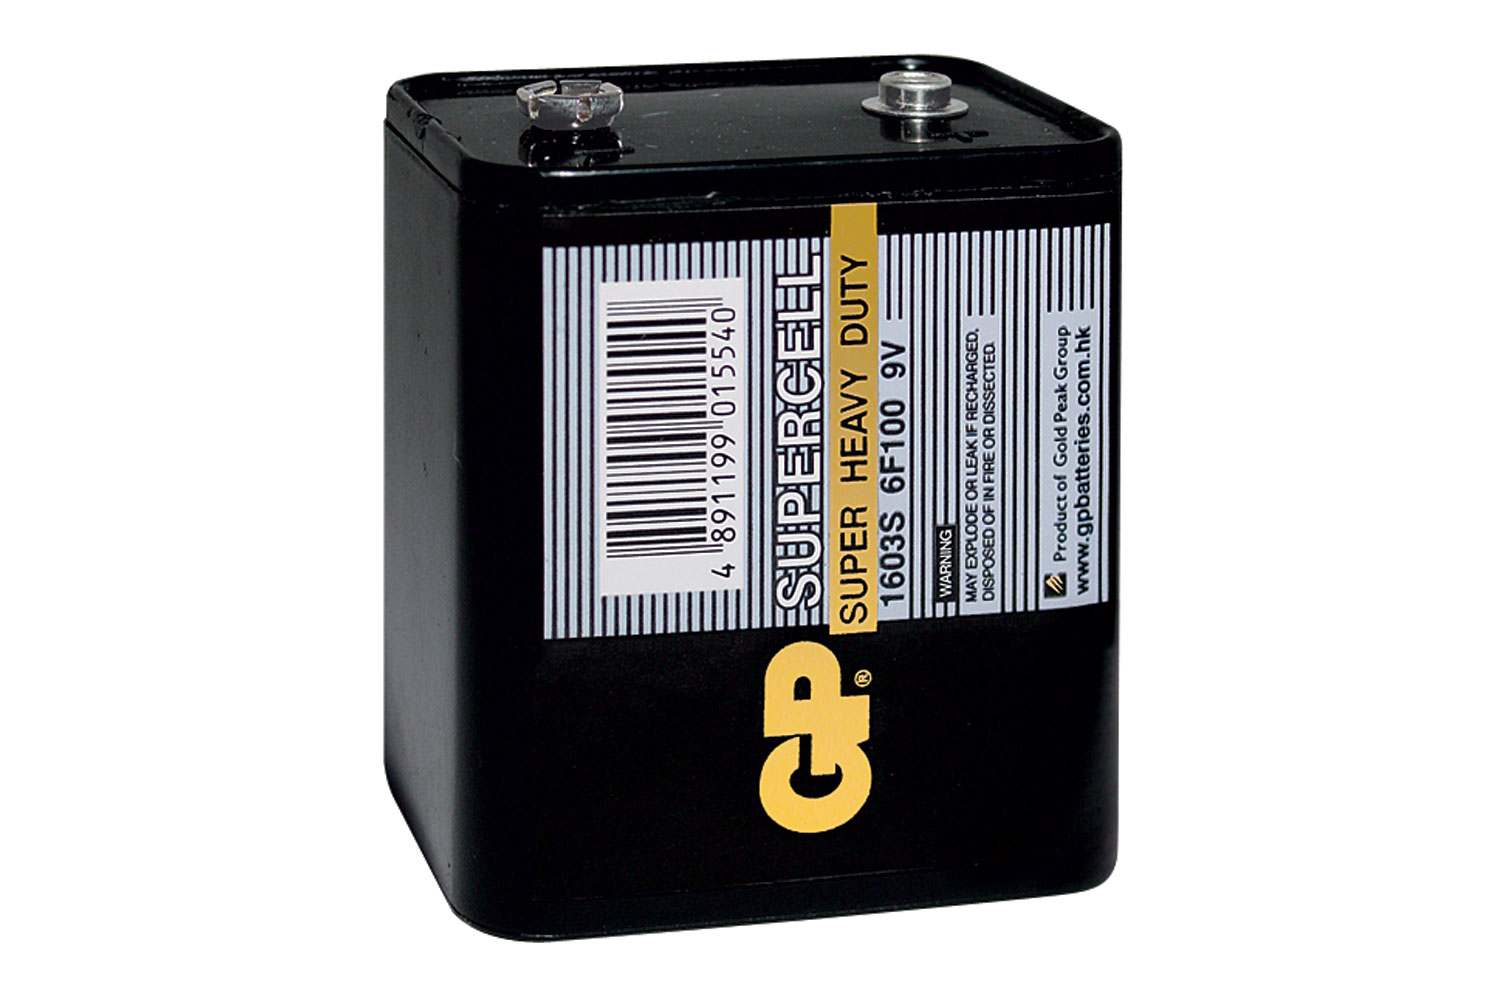 GP? Powercell Battery, GP1603S (PP9), 9V, 63.0x52.0x81.0mm, 1pc/pack